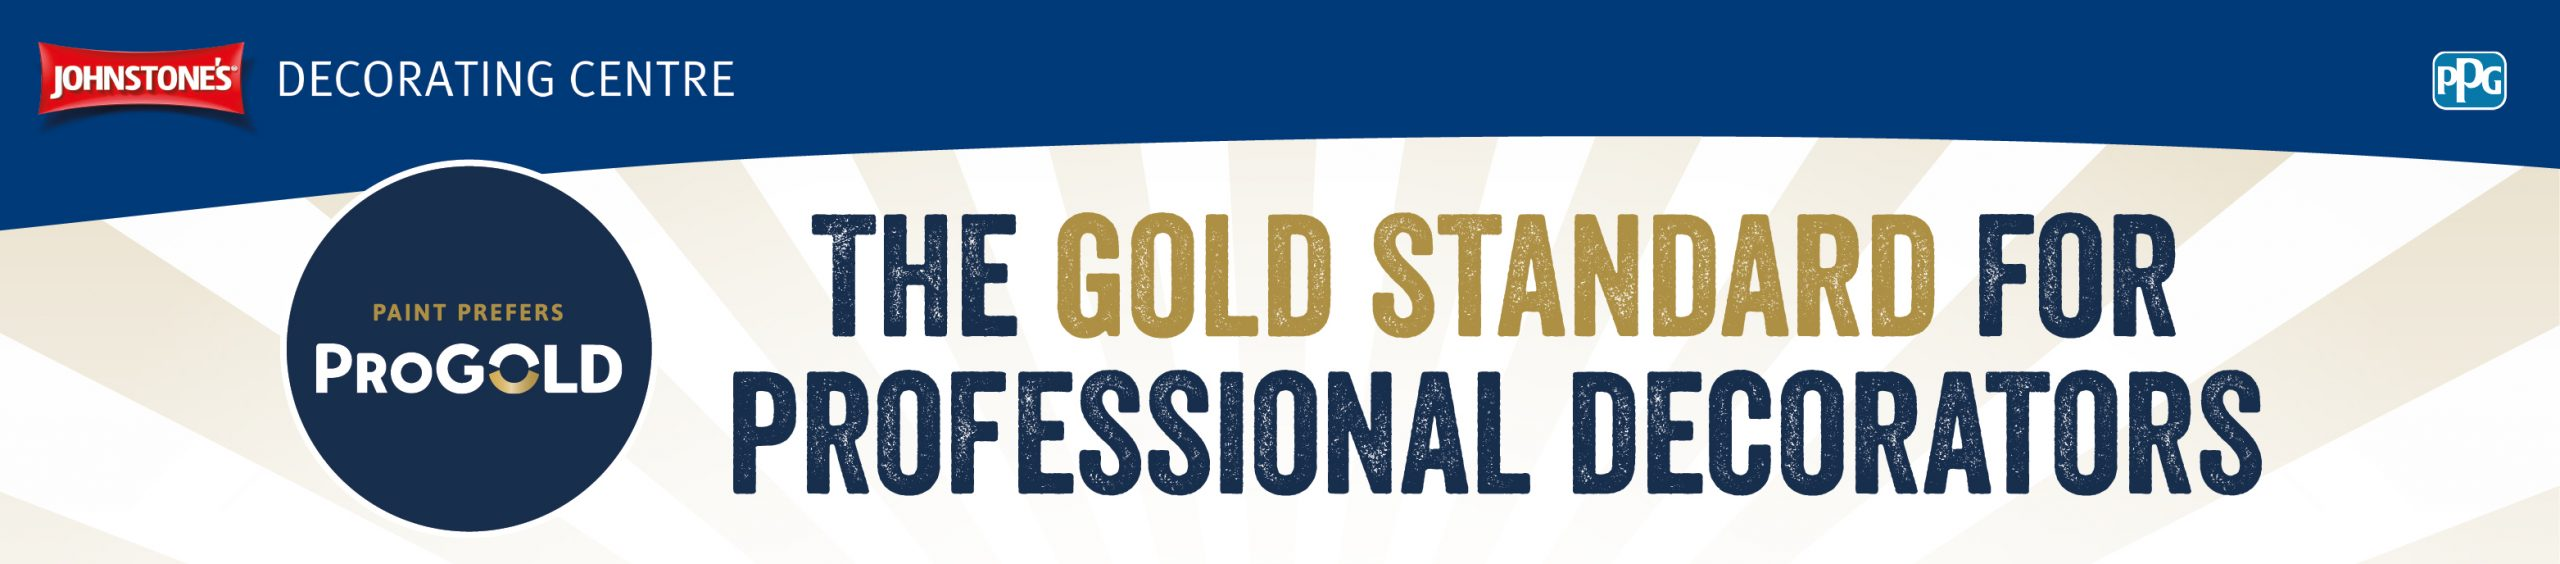 ProGold – The Gold Standard for Proessional Decoratrs